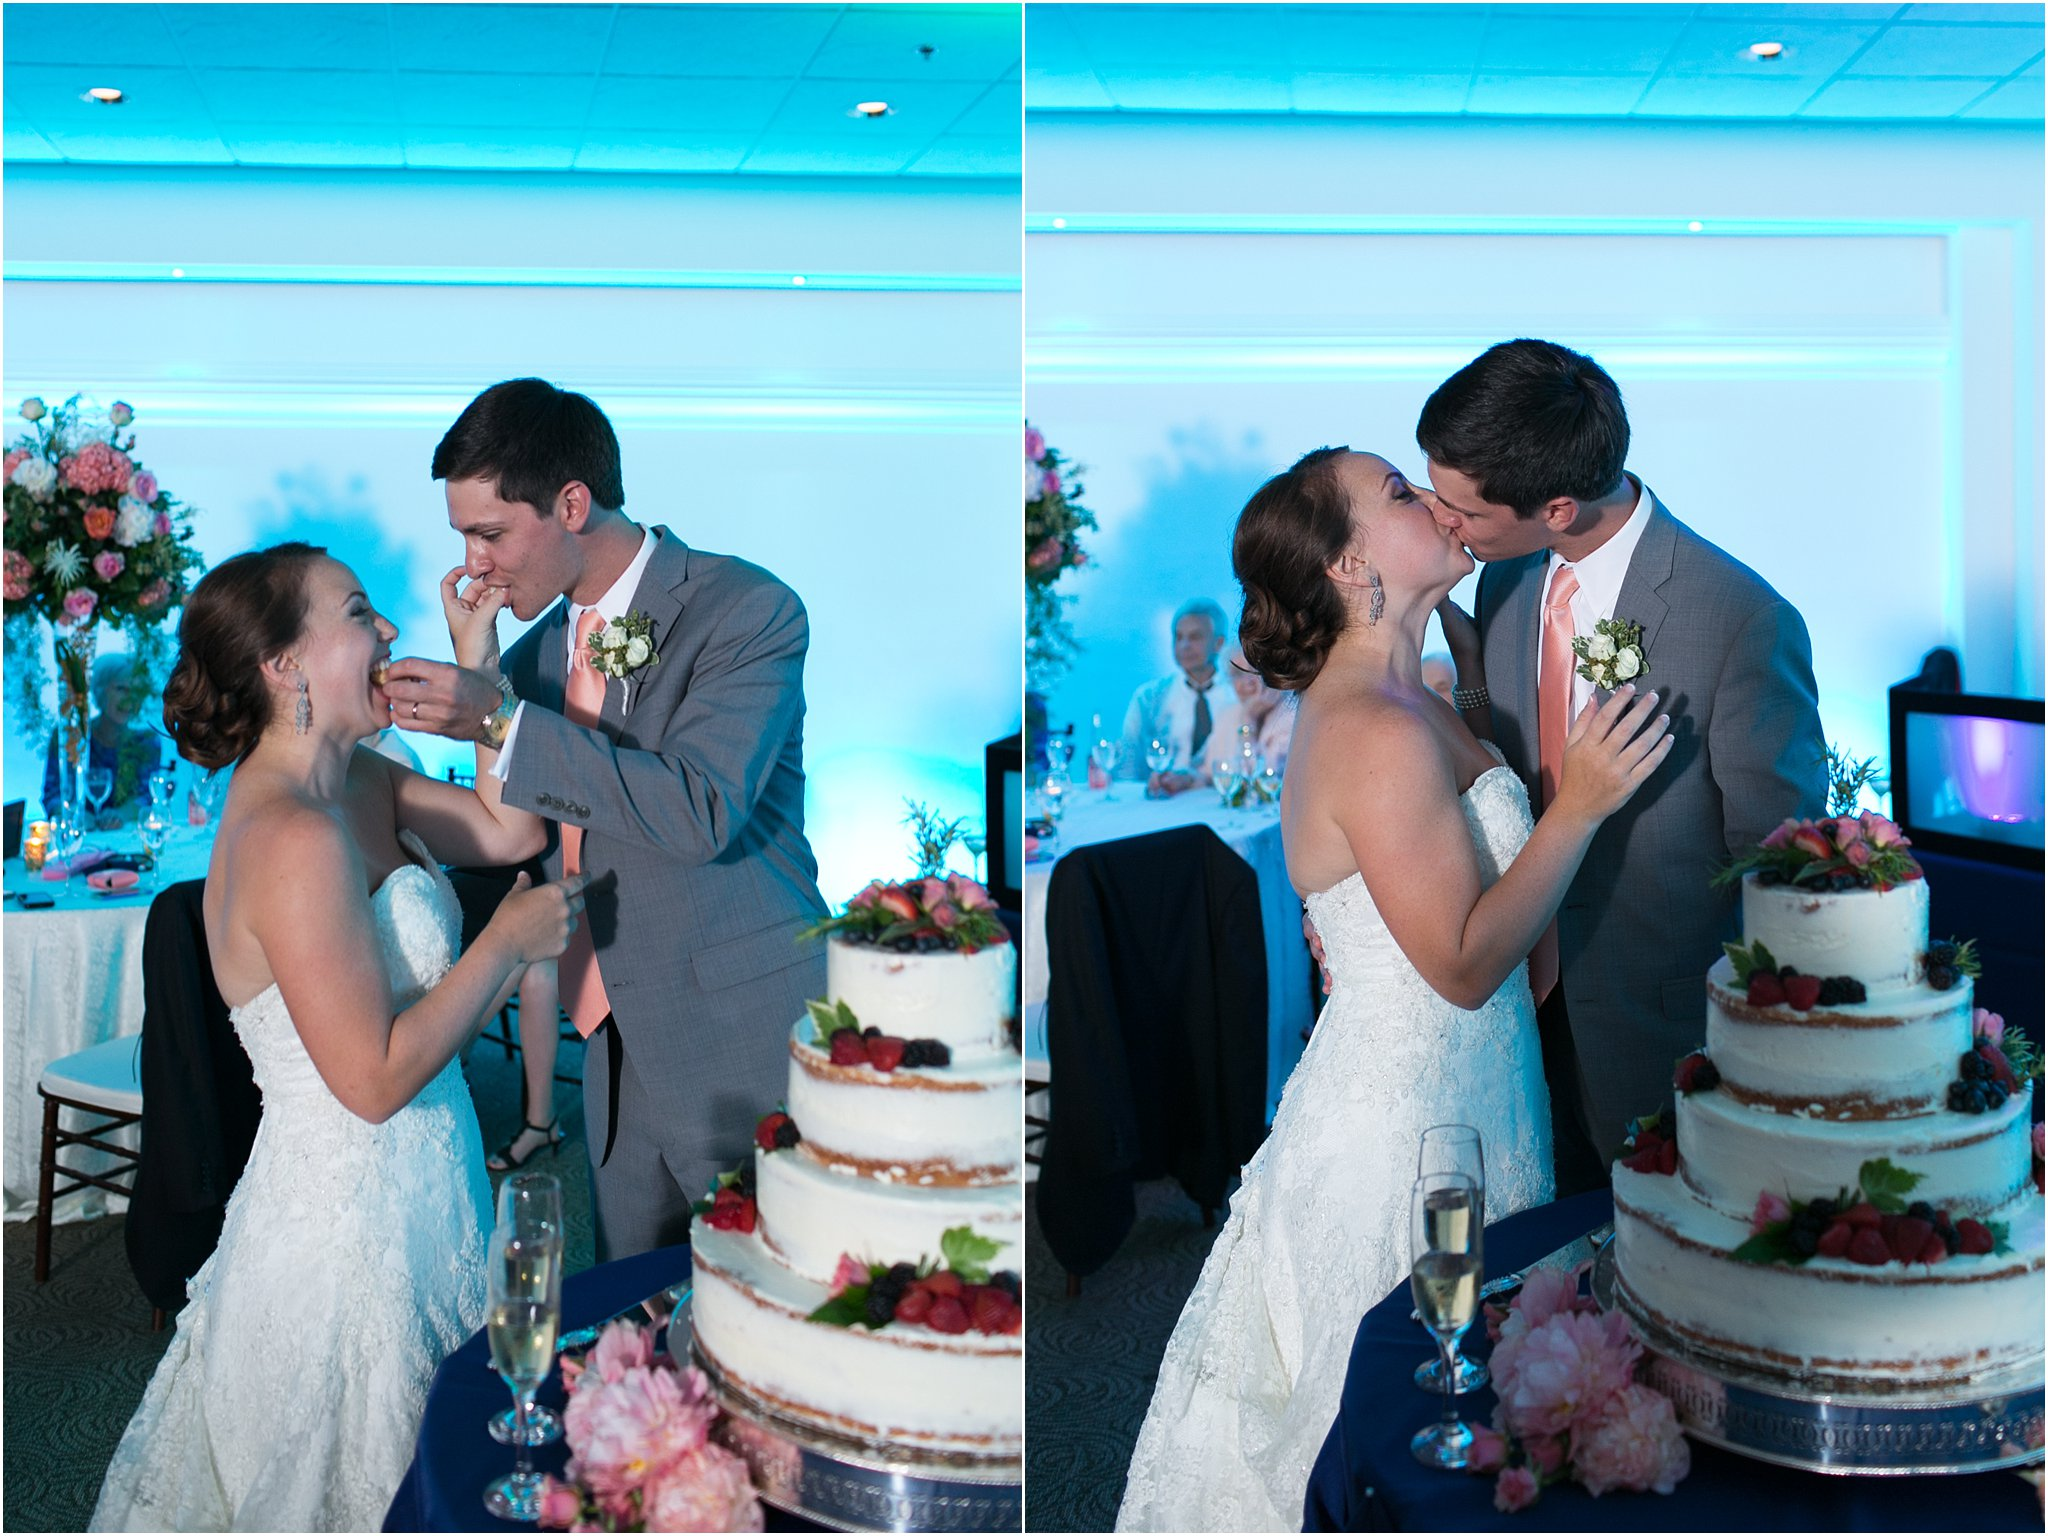 jessica_ryan_photography_wedding_photography_virginiabeach_virginia_candid_authentic_wedding_portraits_marina_shores_yacht_club_chesapeake_bay_1952